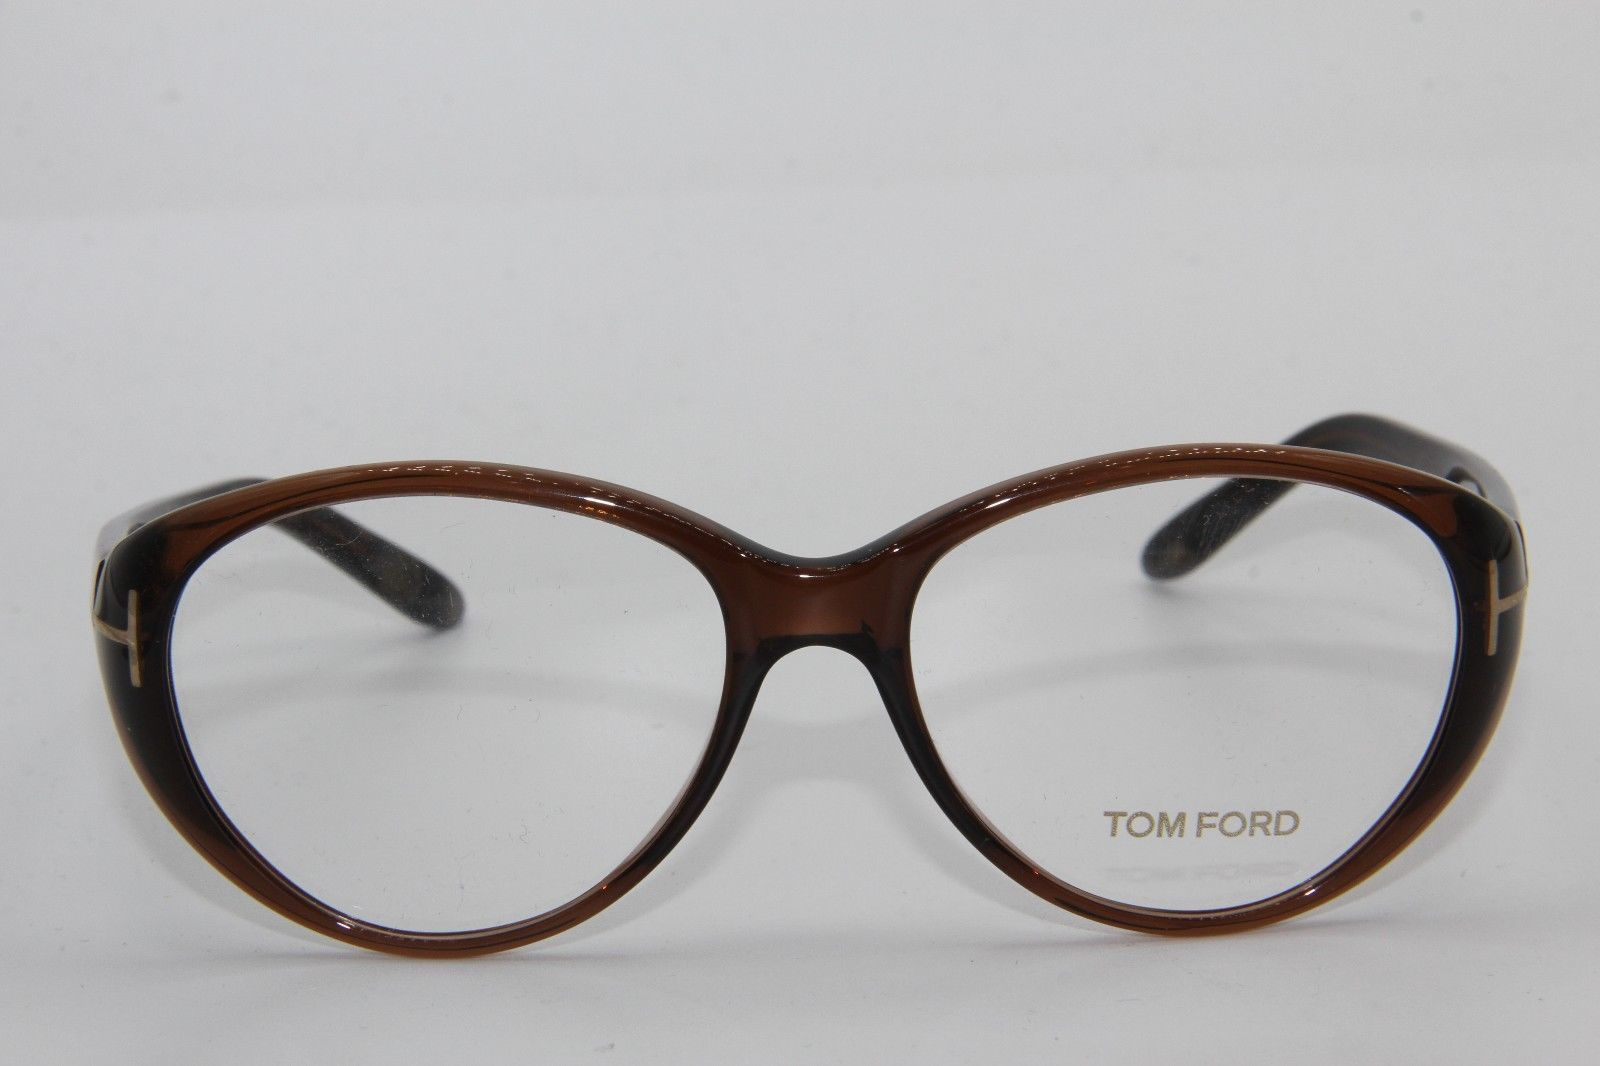 BRAND NEW TOM FORD TF 5245 050 BROWN EYEGLASSES AUTHENTIC FRAME RX TF5245 53-15